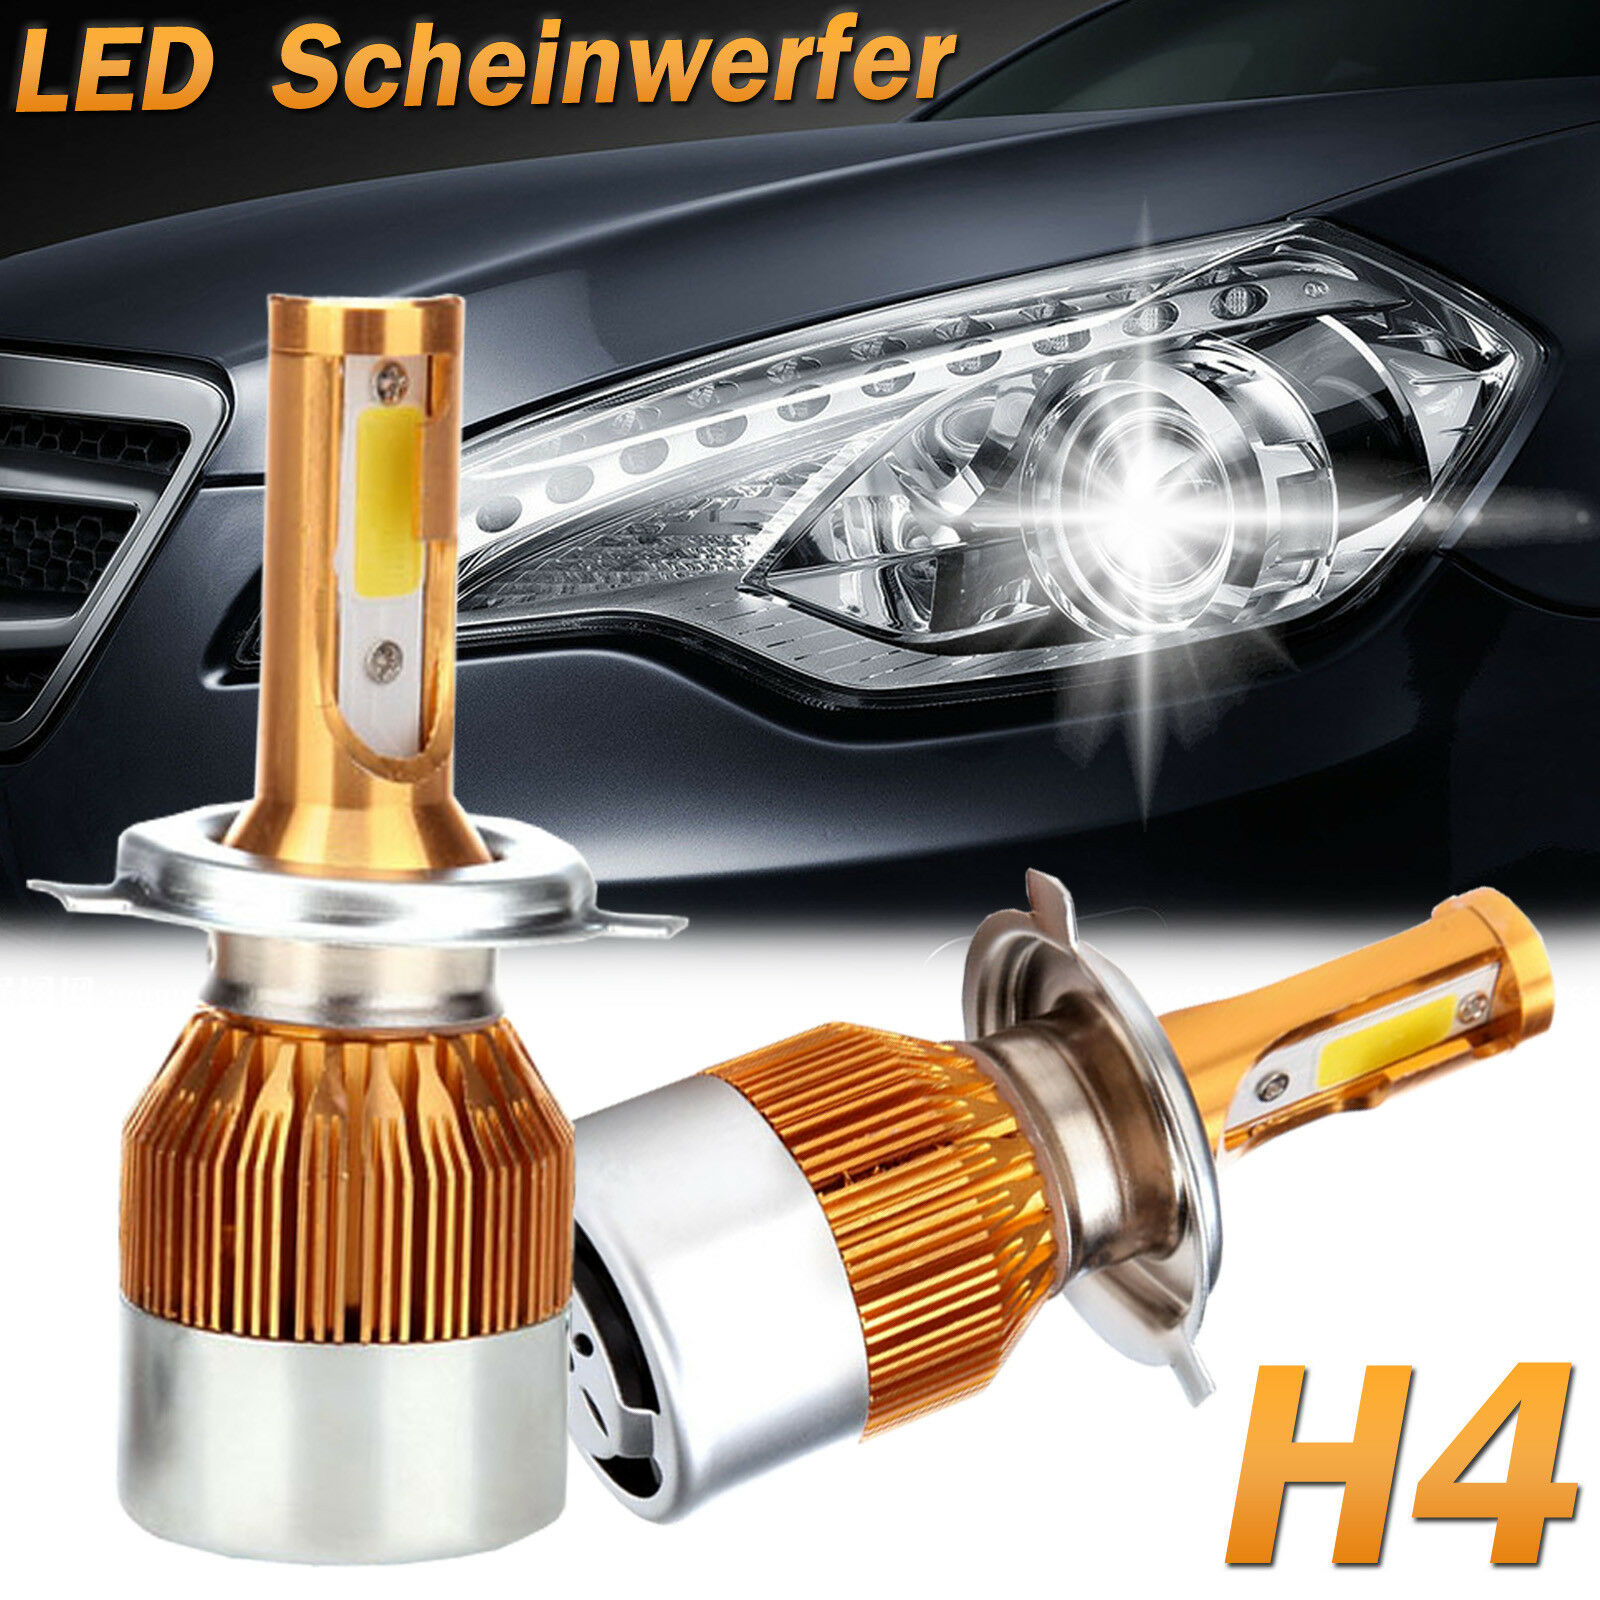 h4 auto scheinwerfer lichter 600w cob led birne set lampe. Black Bedroom Furniture Sets. Home Design Ideas